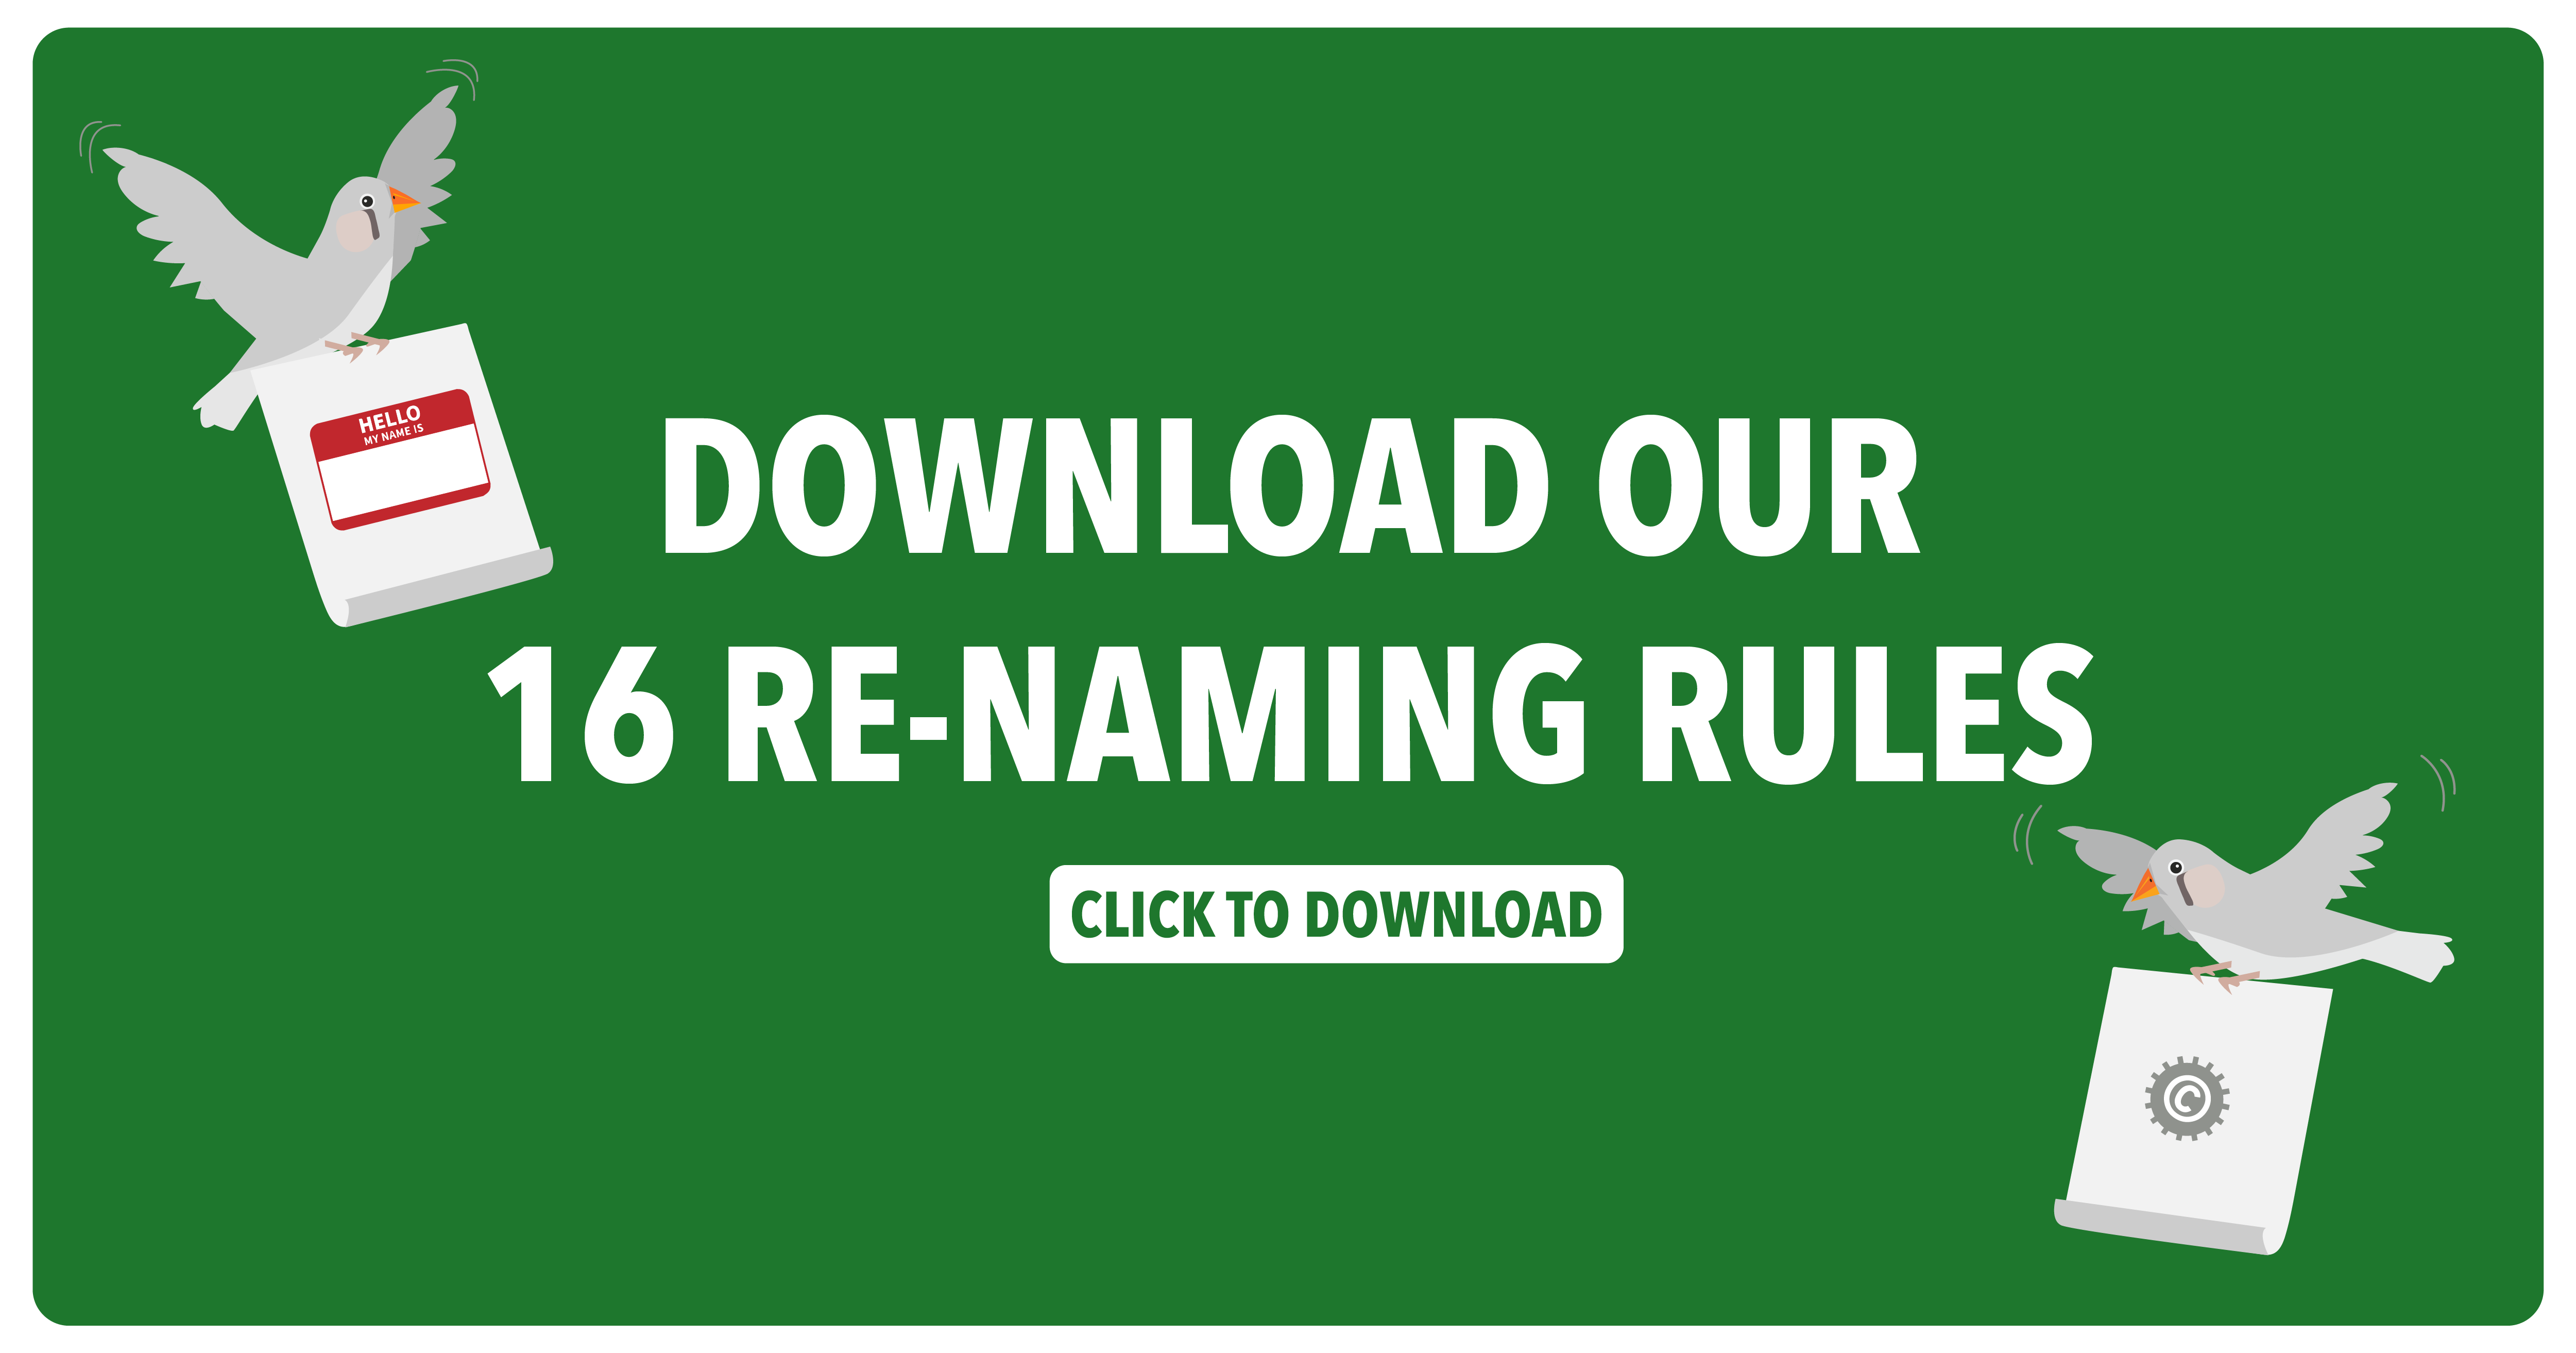 Download our 16 Rules of Renaming here